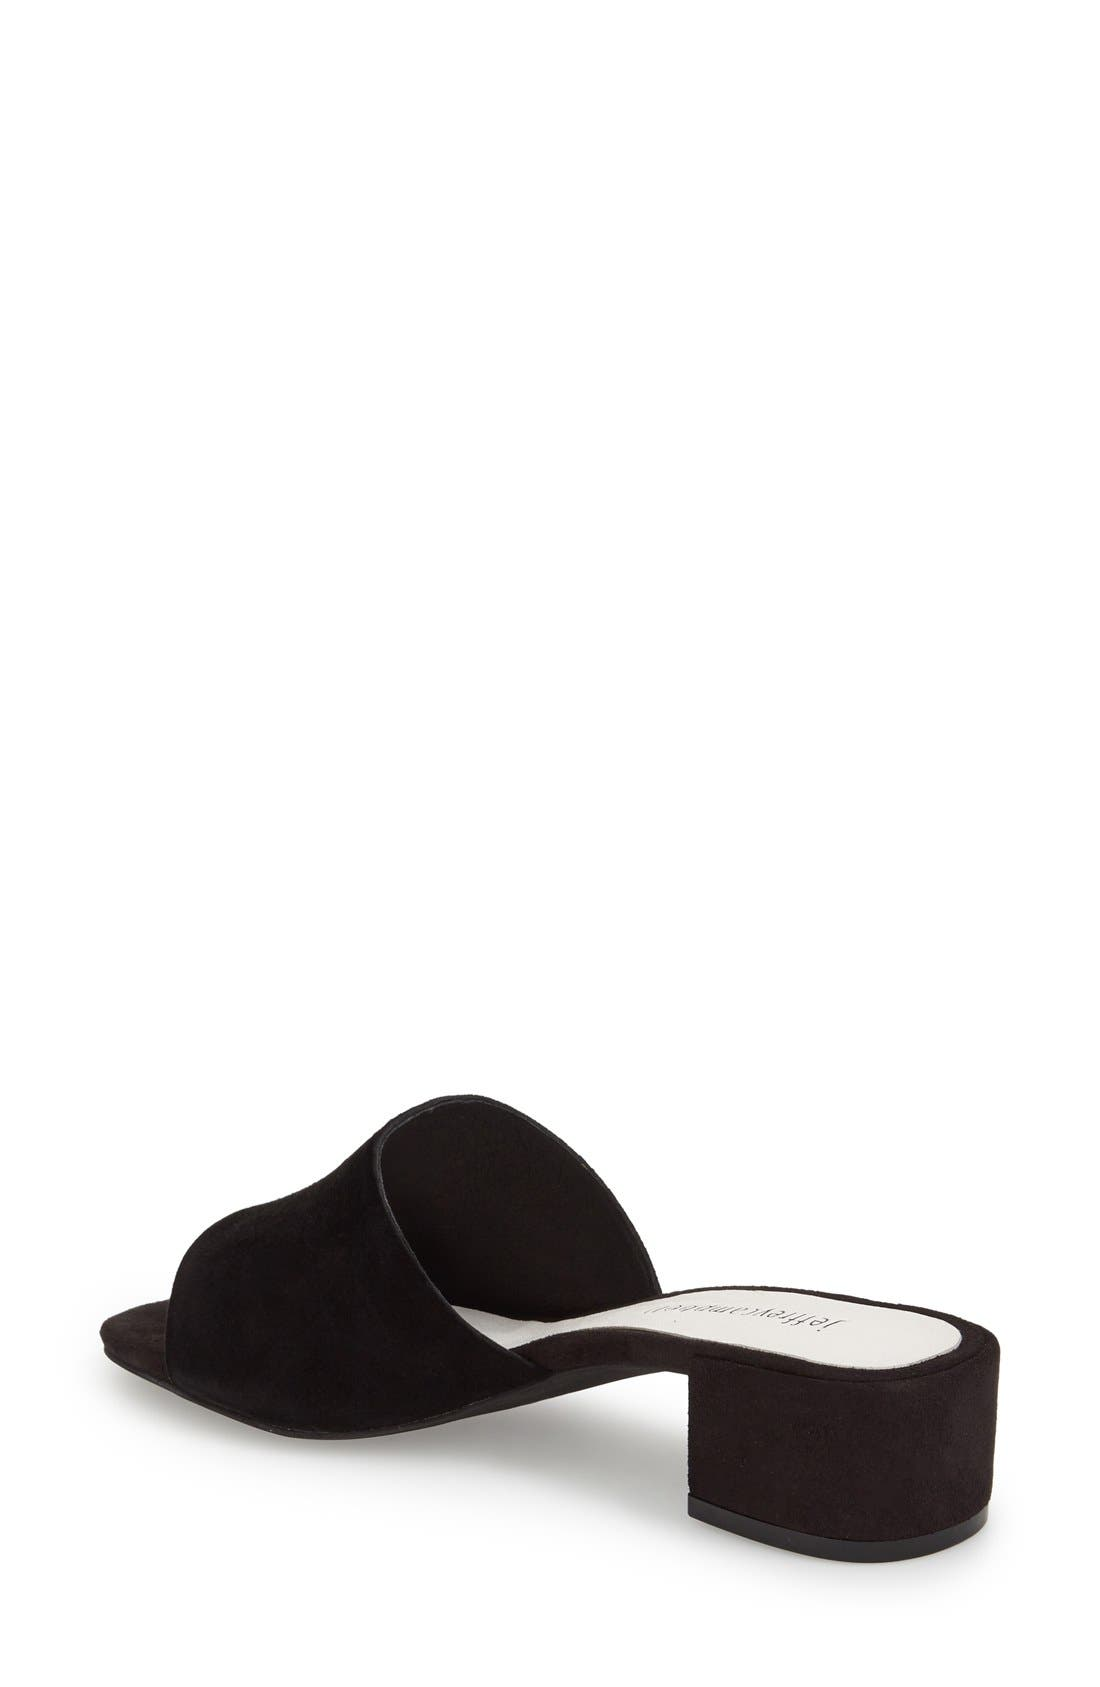 'Beaton' Slide Sandal,                             Alternate thumbnail 13, color,